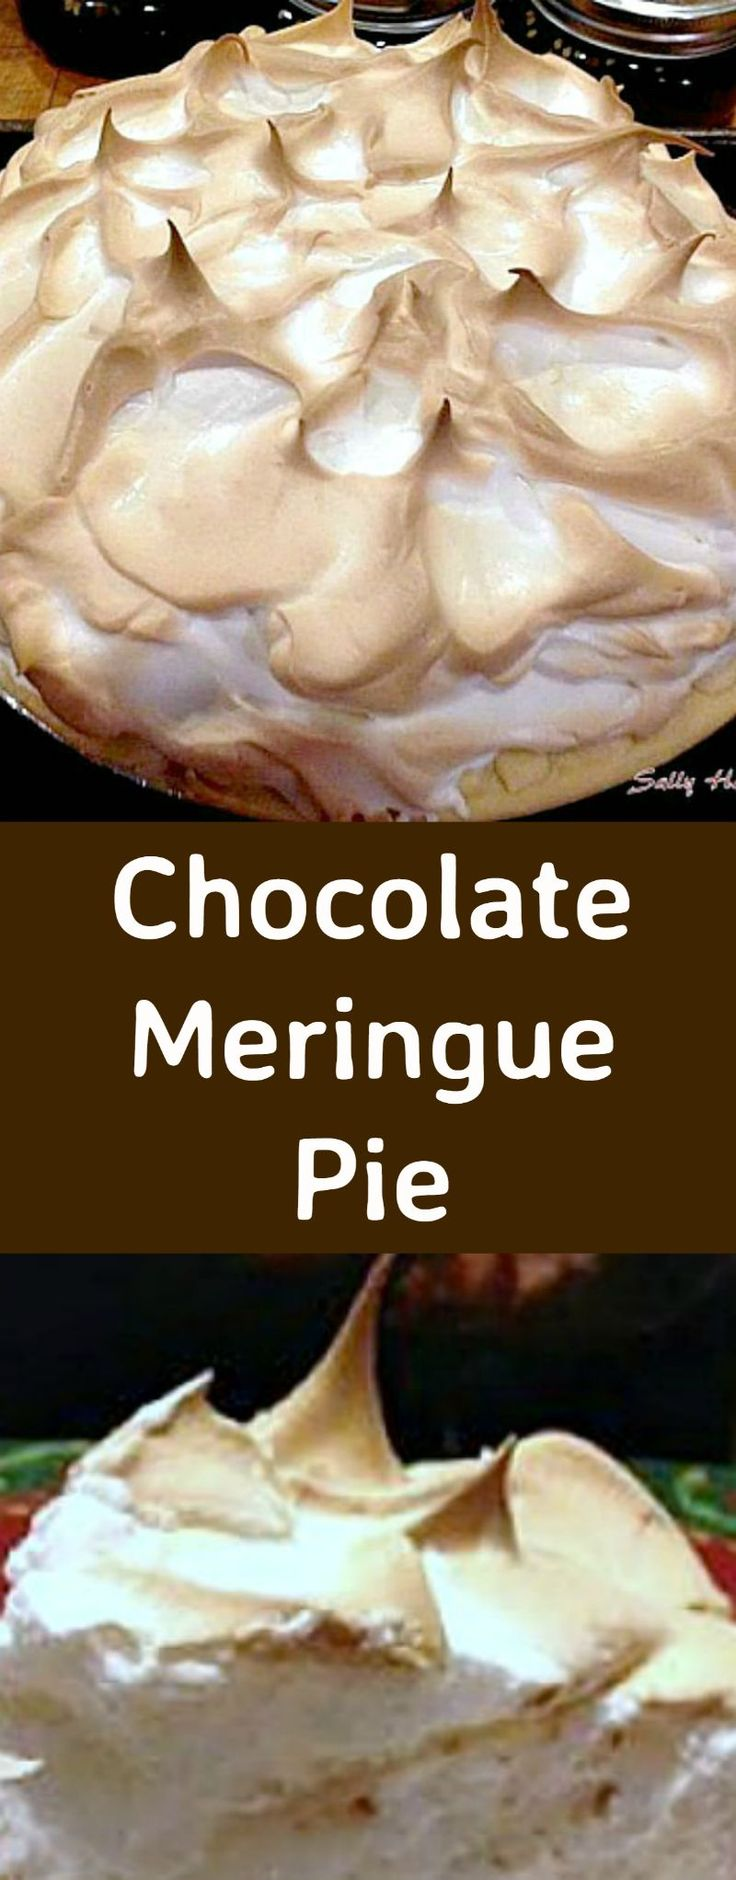 Chocolate Meringue Pie. Easy to make and looks fabulous! Perfect for the holidays!